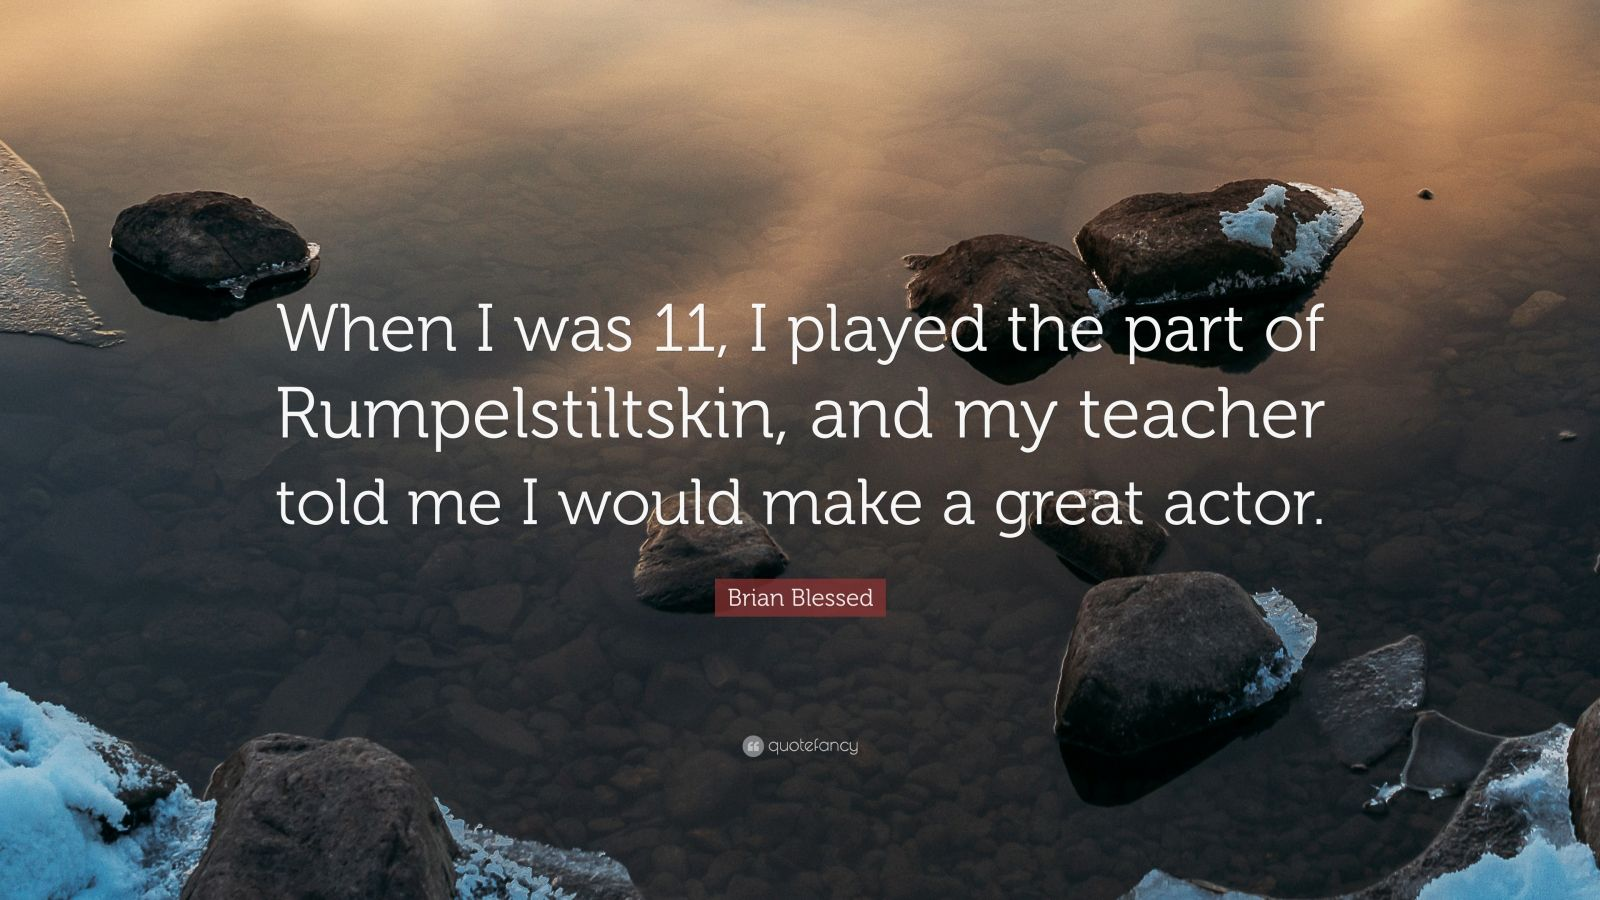 """Brian Blessed Quote: """"When I was 11, I played the part of Rumpelstiltskin, and my teacher told me I would make a great actor."""""""